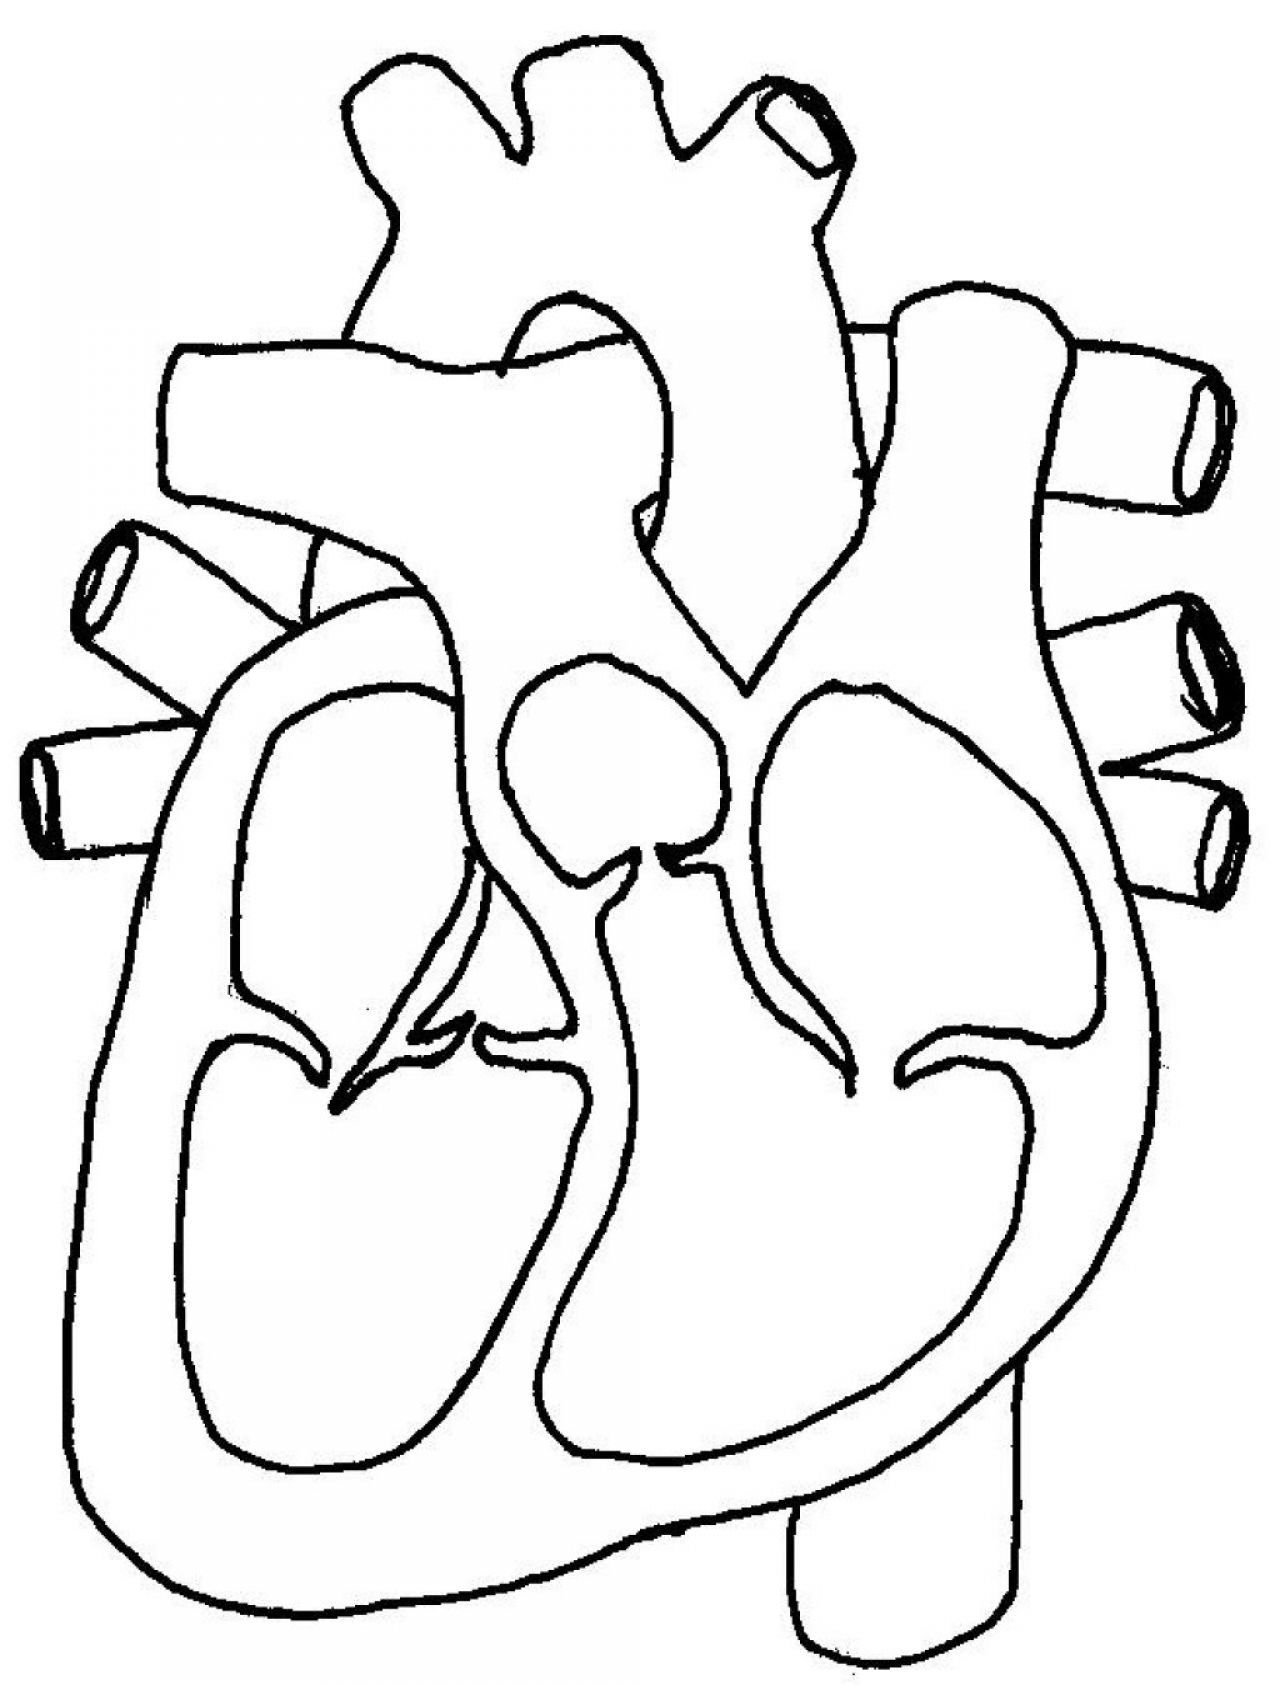 Blank label human heart clipart black and white clip art free download Heart Diagram Blank - Wiring Diagrams Dock clip art free download